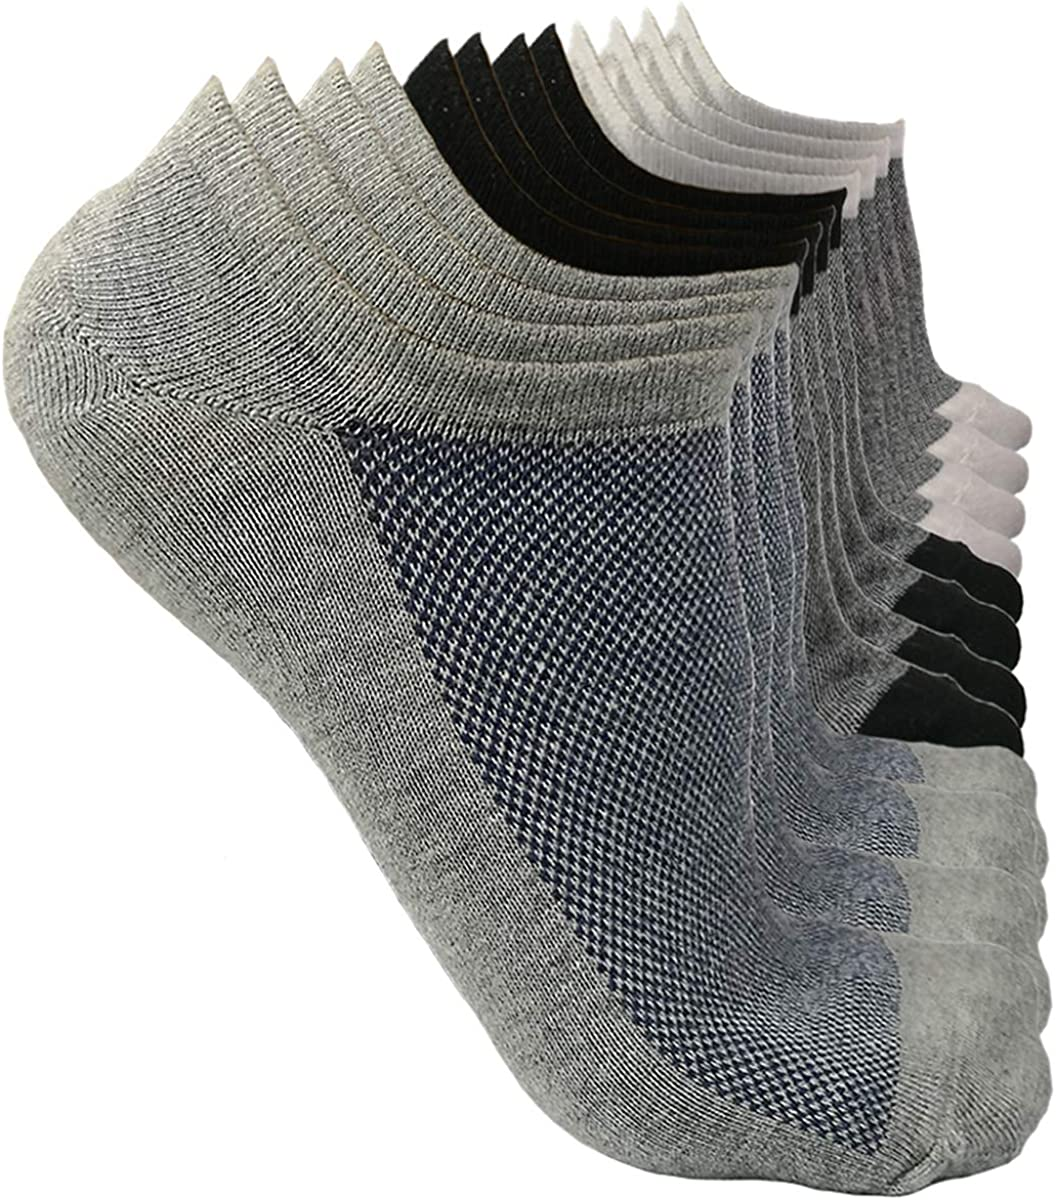 6 Pairs Low Cut No Show Socks Cotton Invisible Ankle Athletic Socks Sneaker Socks Non Slip Comfortable Sports Trainer Casual Socks for Men Women Flats Boat Shoes Loafers